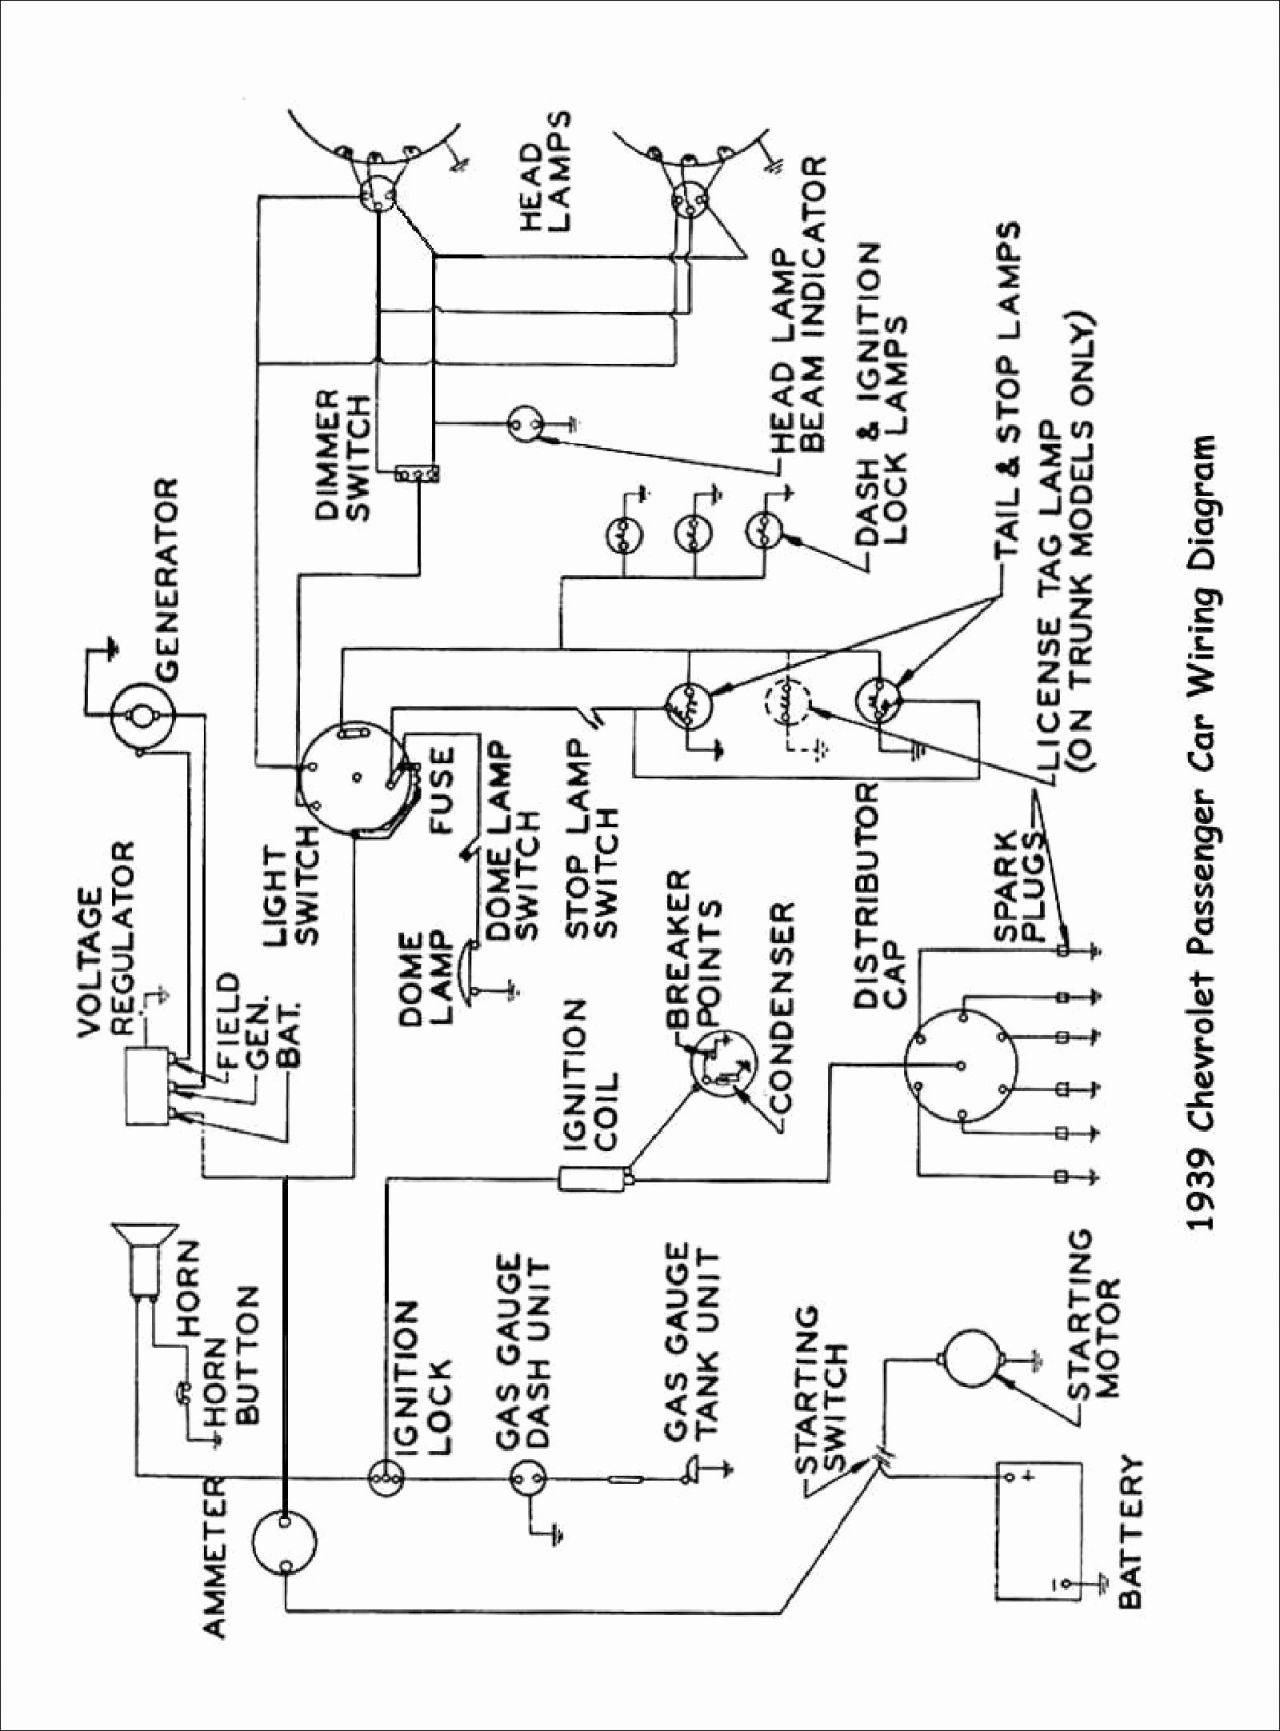 [EE_6414] Wiring Diagram For Chevrolet Fuel Gauge Free Diagram